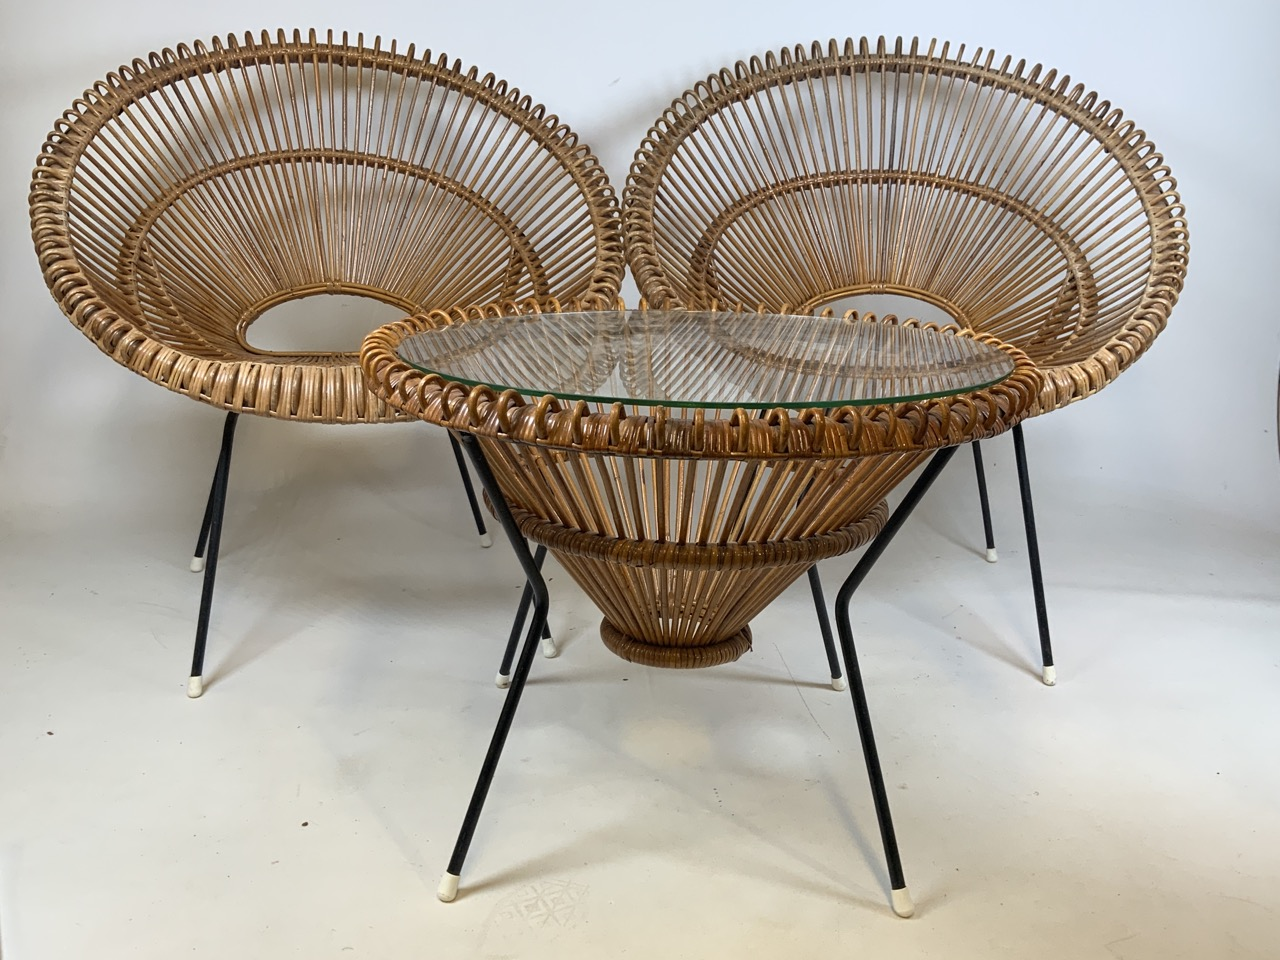 A Franco Albini mid century circular coffee table in wicker and metal with glass top and two